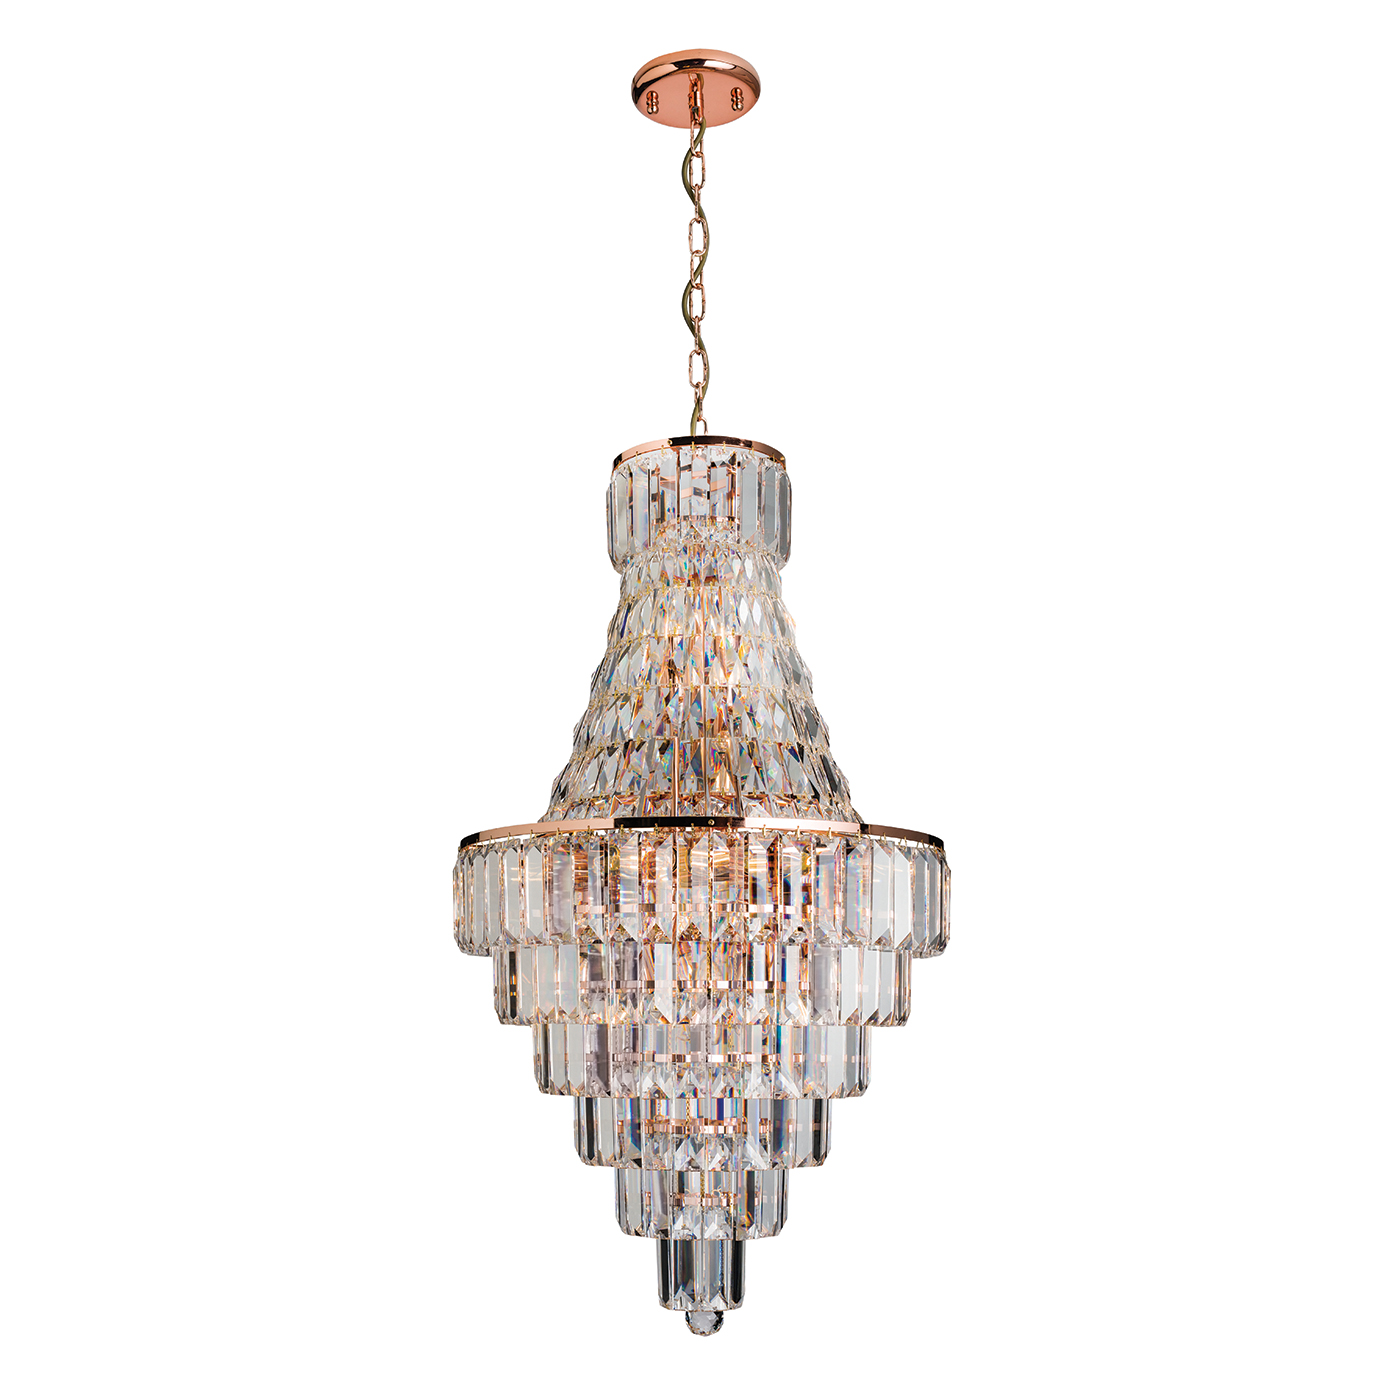 Endon Innsbruck 1 chandelier 8x 40W Rose gold effect plate